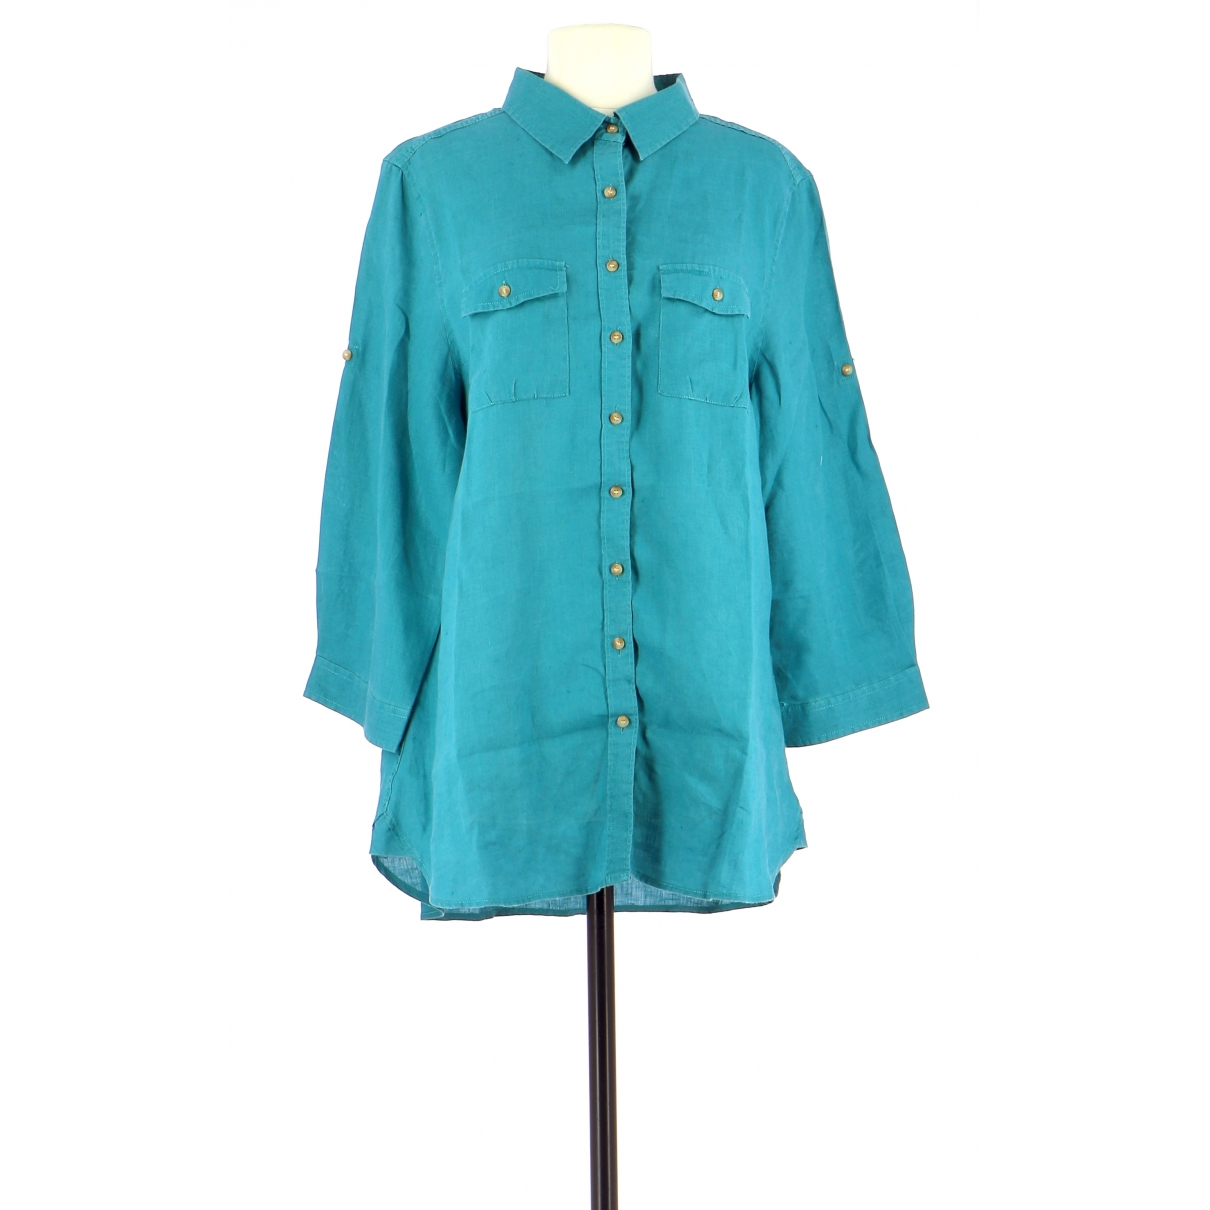 Dolce & Gabbana \N Turquoise Linen  top for Women 42 FR